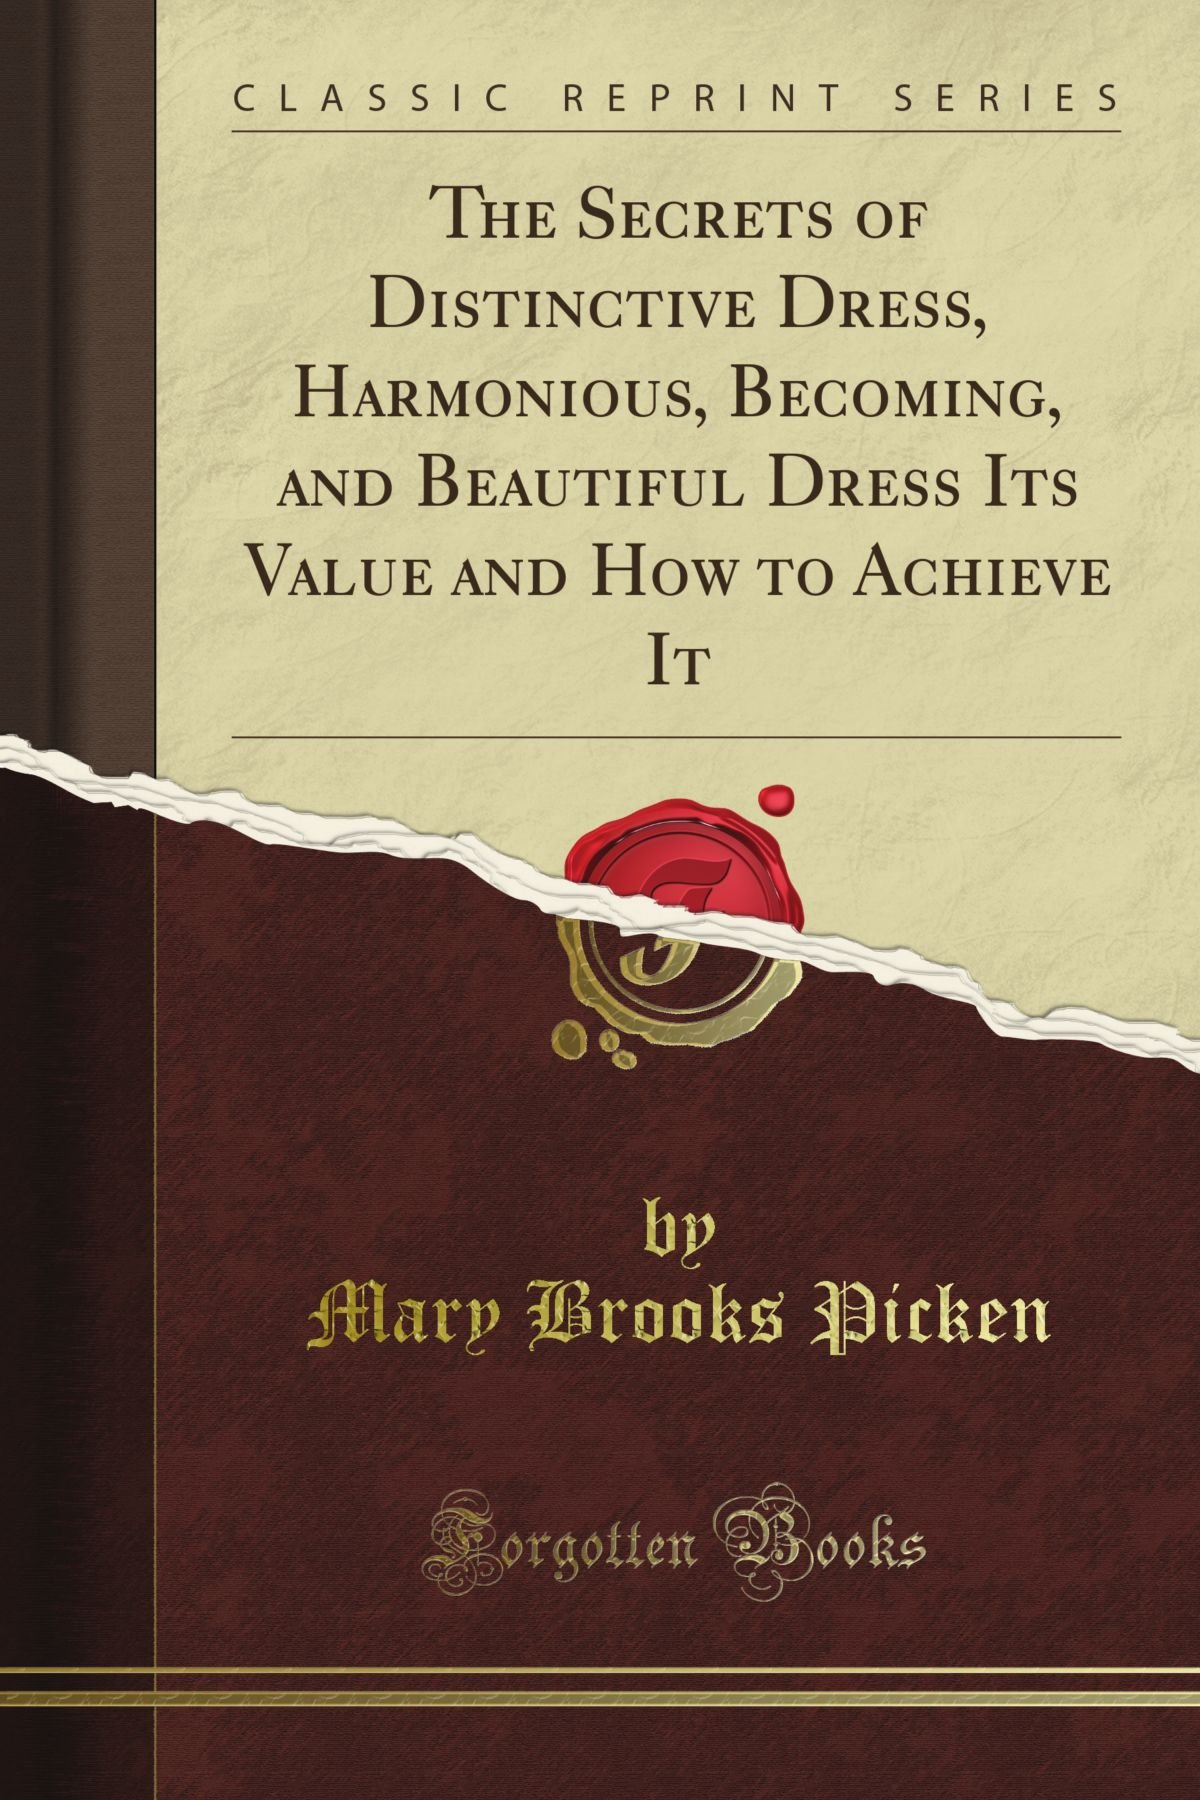 Read Online The Secrets of Distinctive Dress, Harmonious, Becoming, and Beautiful Dress Its Value and How to Achieve It (Classic Reprint) pdf